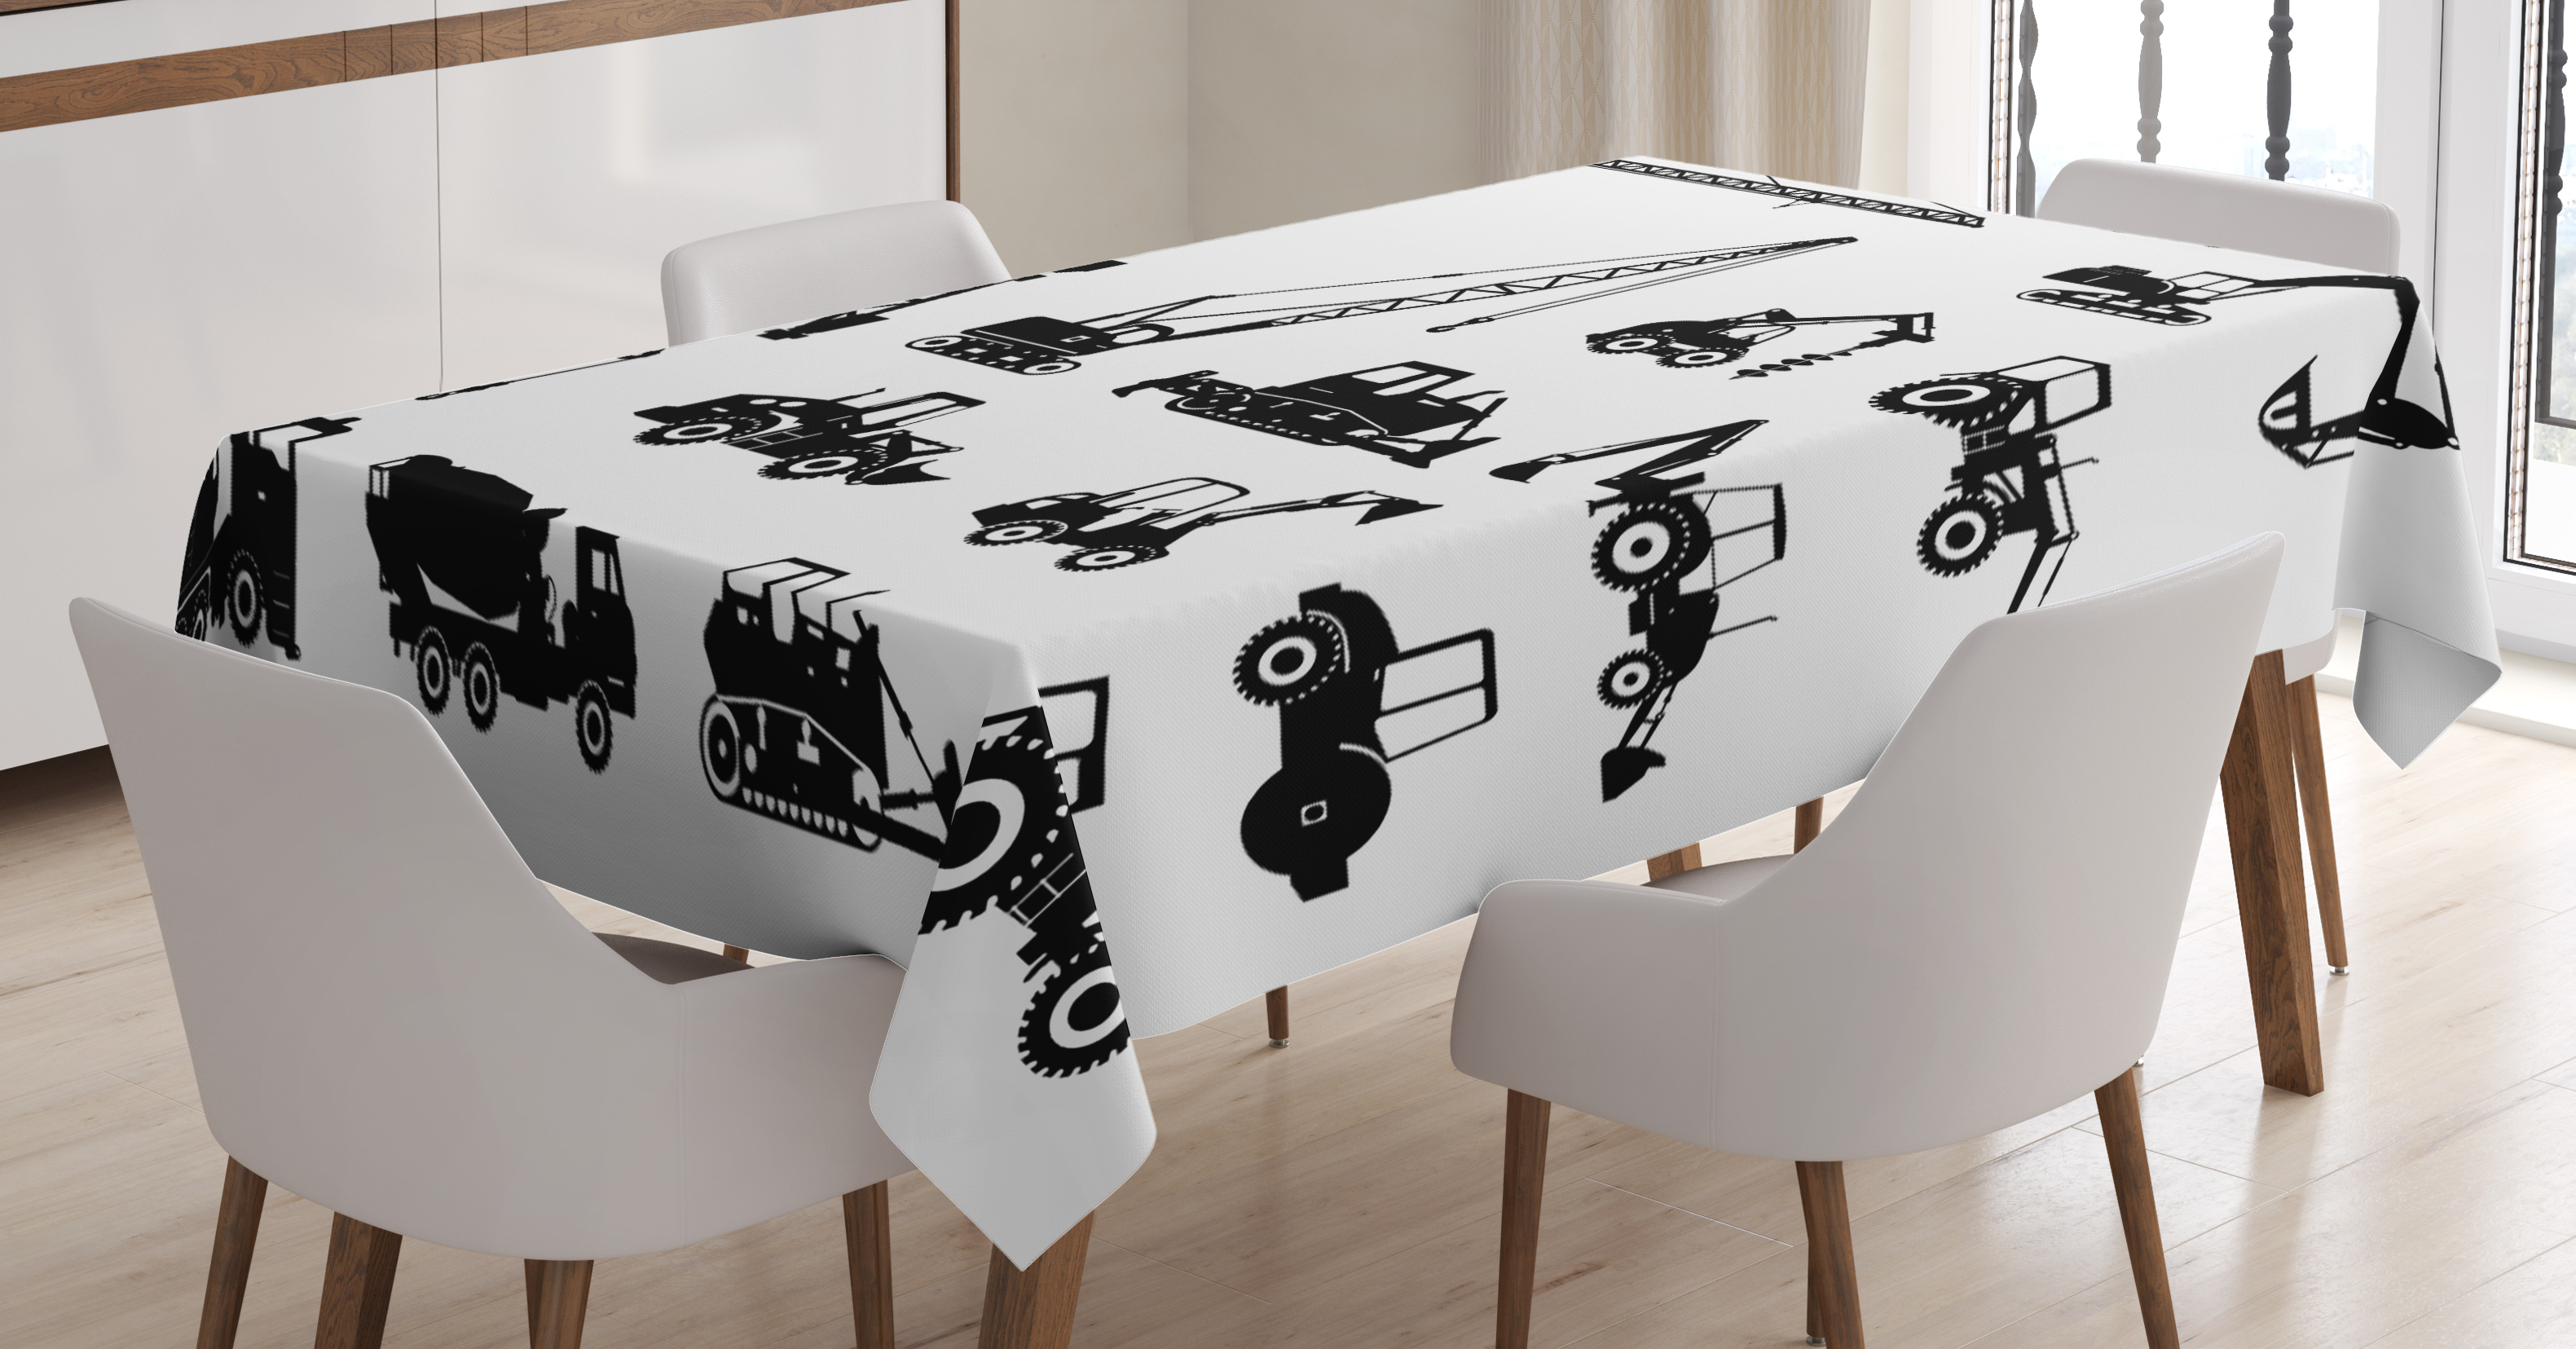 Construction Tablecloth, Black Silhouettes Concrete Mixer Machines Industrial Set Trucks Tractors, Rectangular Table... by Kozmos